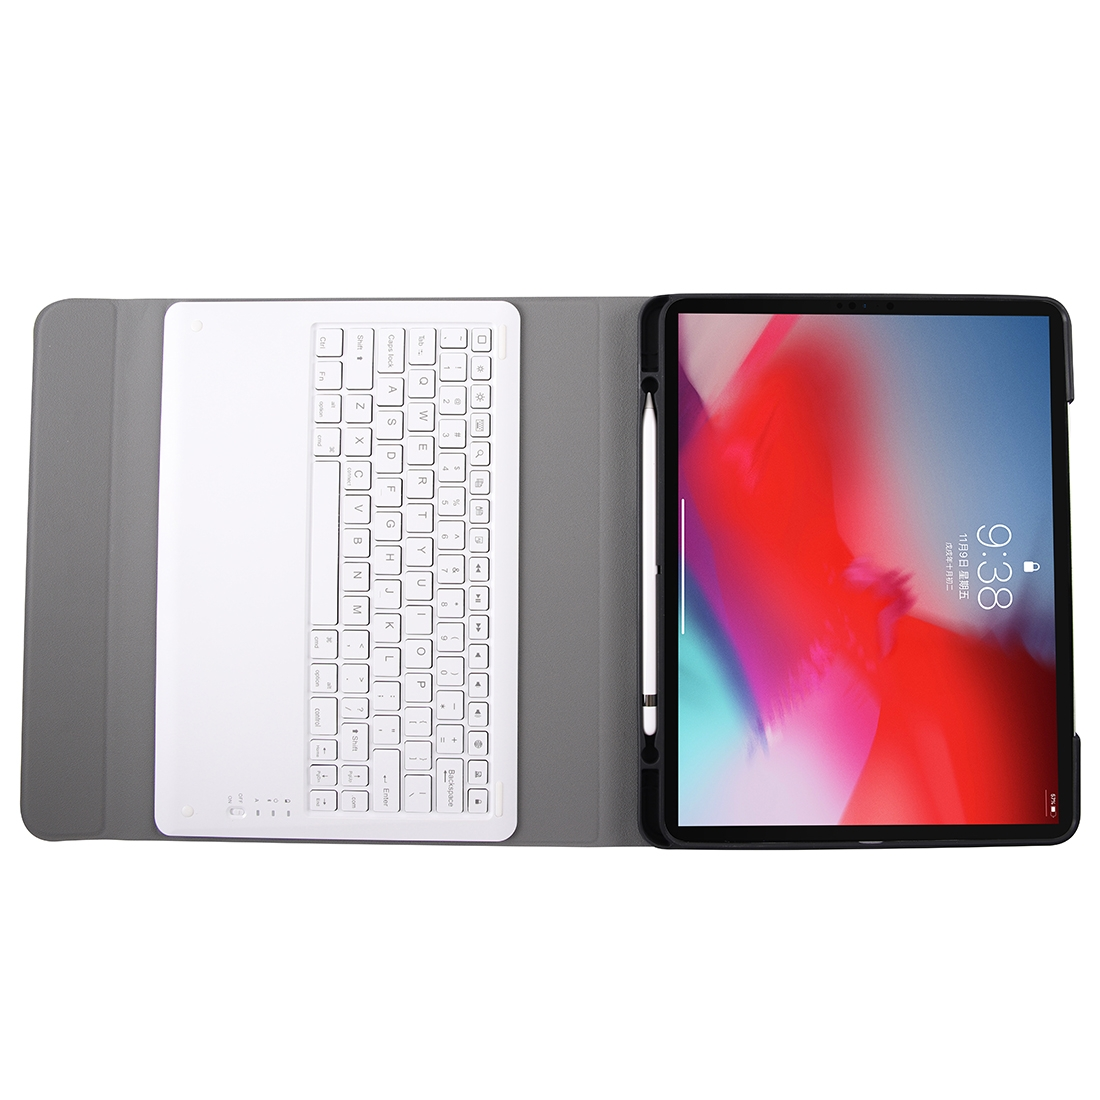 iPad Pro 12.9 Case With Keyboard (2018), Leather Case With Detachable Bluetooth Keyboard (Gold)